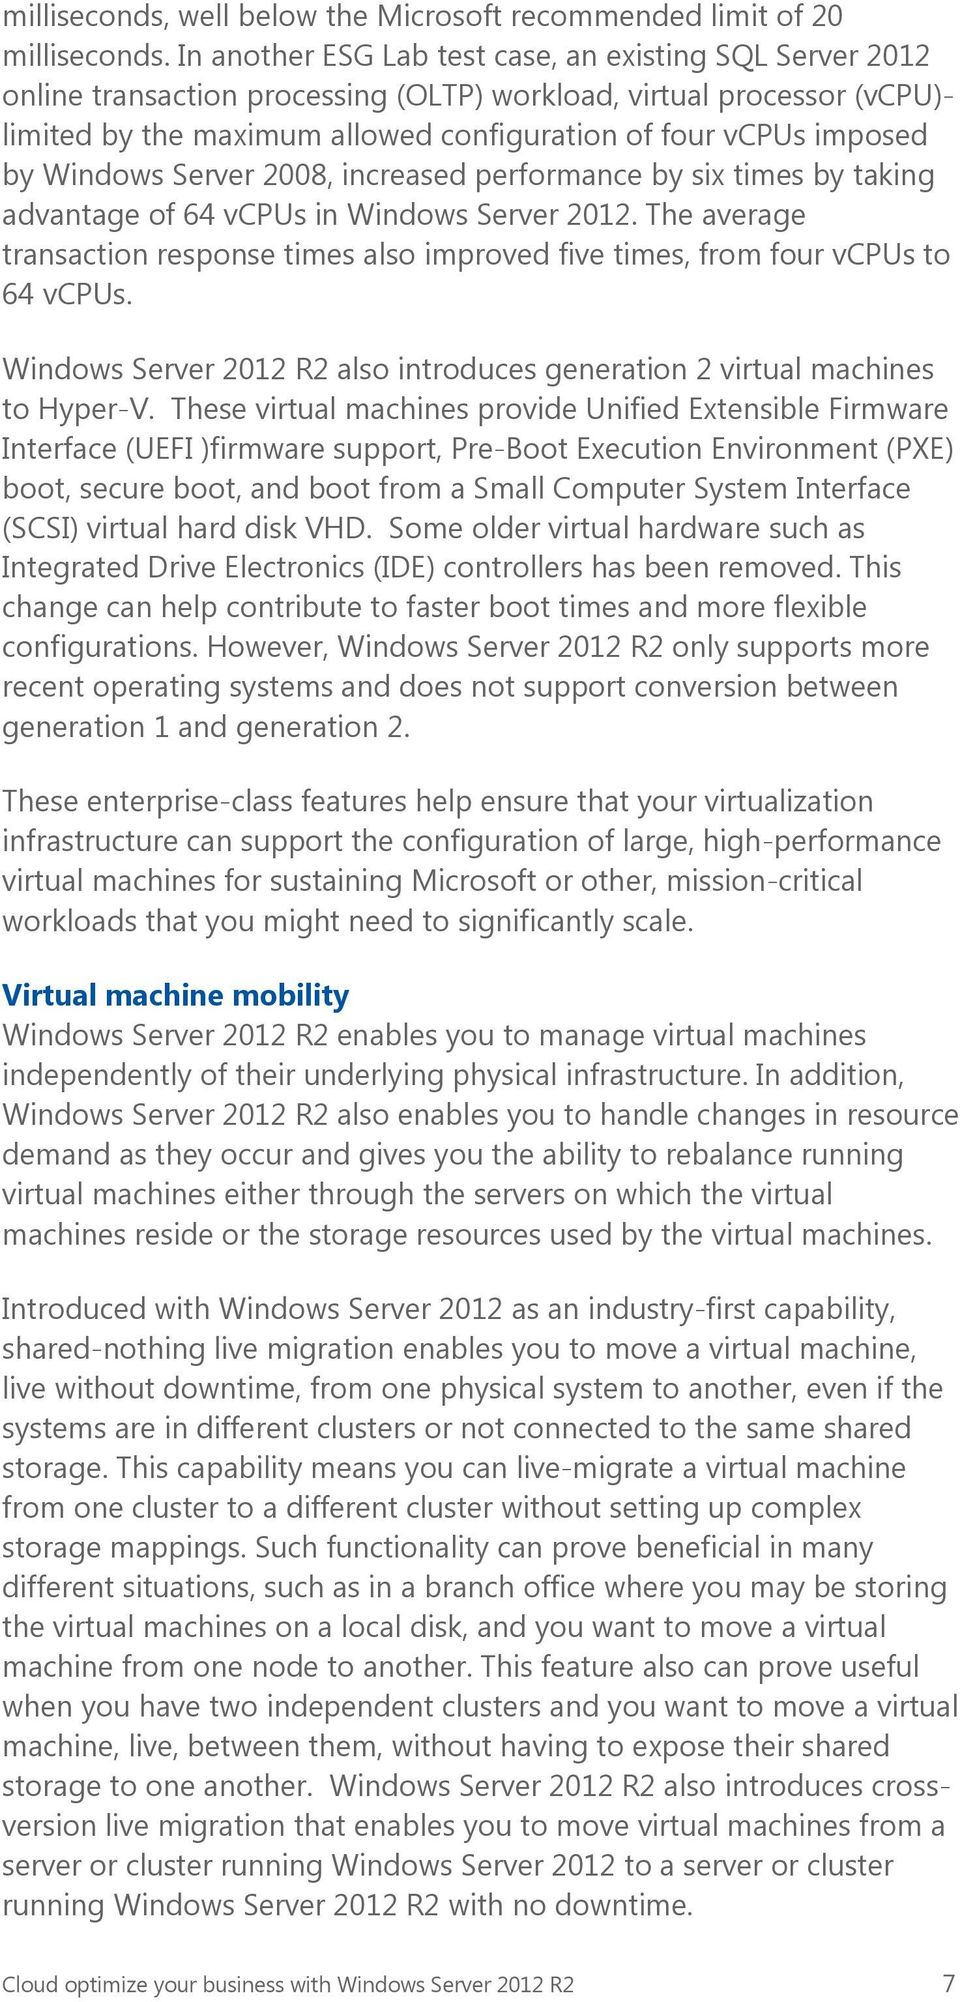 by Windows Server 2008, increased performance by six times by taking advantage of 64 vcpus in Windows Server 2012.